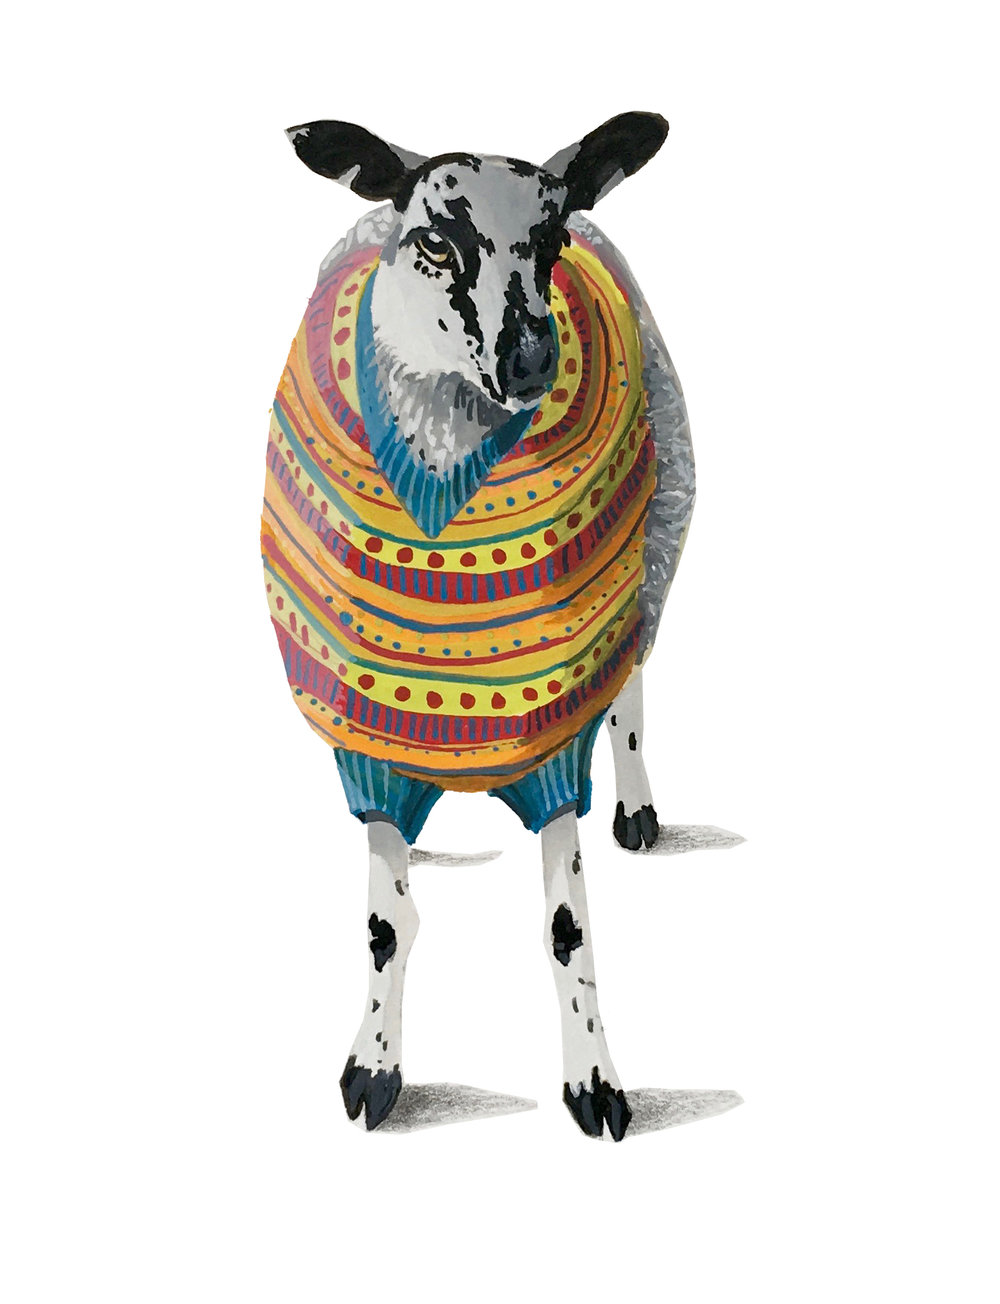 Ewe Look Lovely in That Jumper!